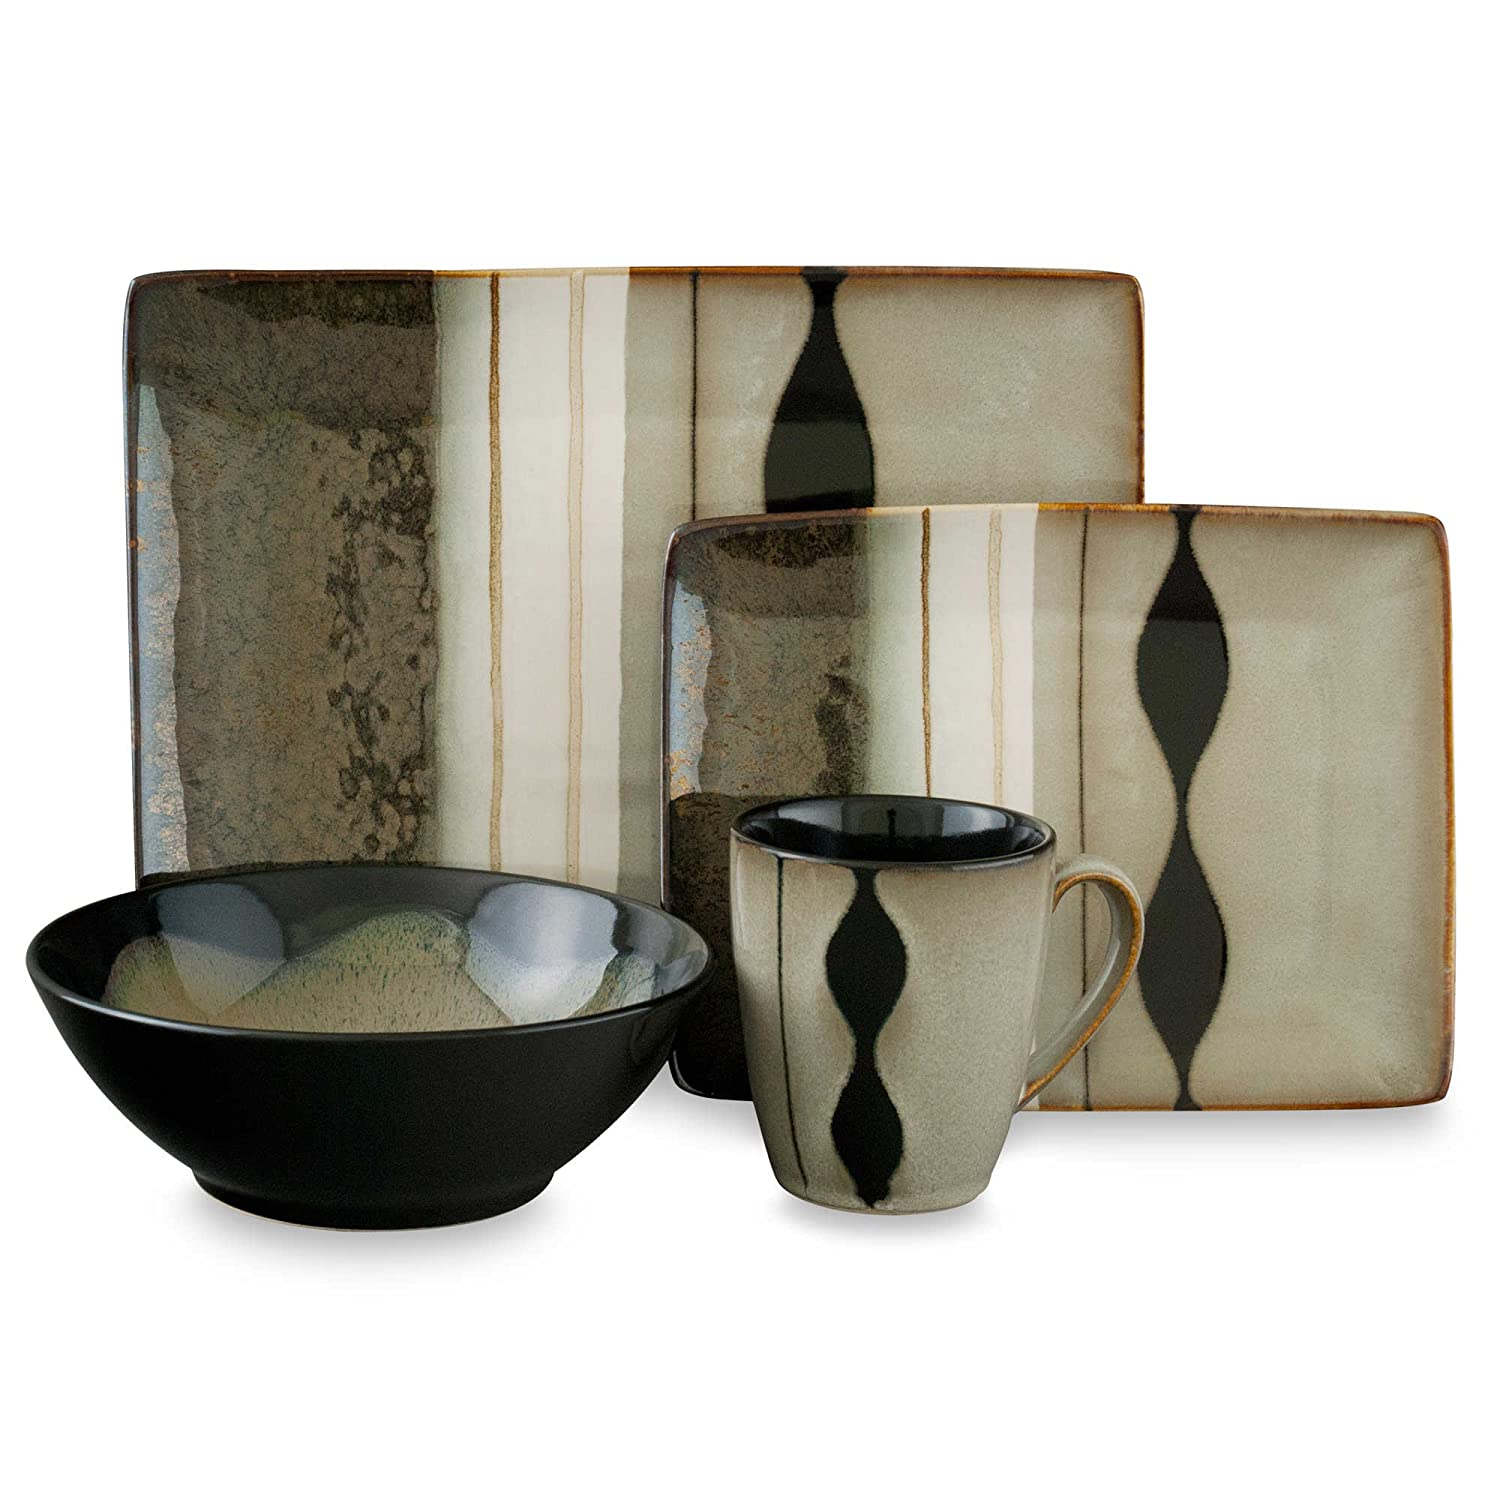 Amazon.com | Sango Prelude Black 16-Piece Dinnerware Set Dinnerware Sets  sc 1 st  Amazon.com & Amazon.com | Sango Prelude Black 16-Piece Dinnerware Set: Dinnerware ...